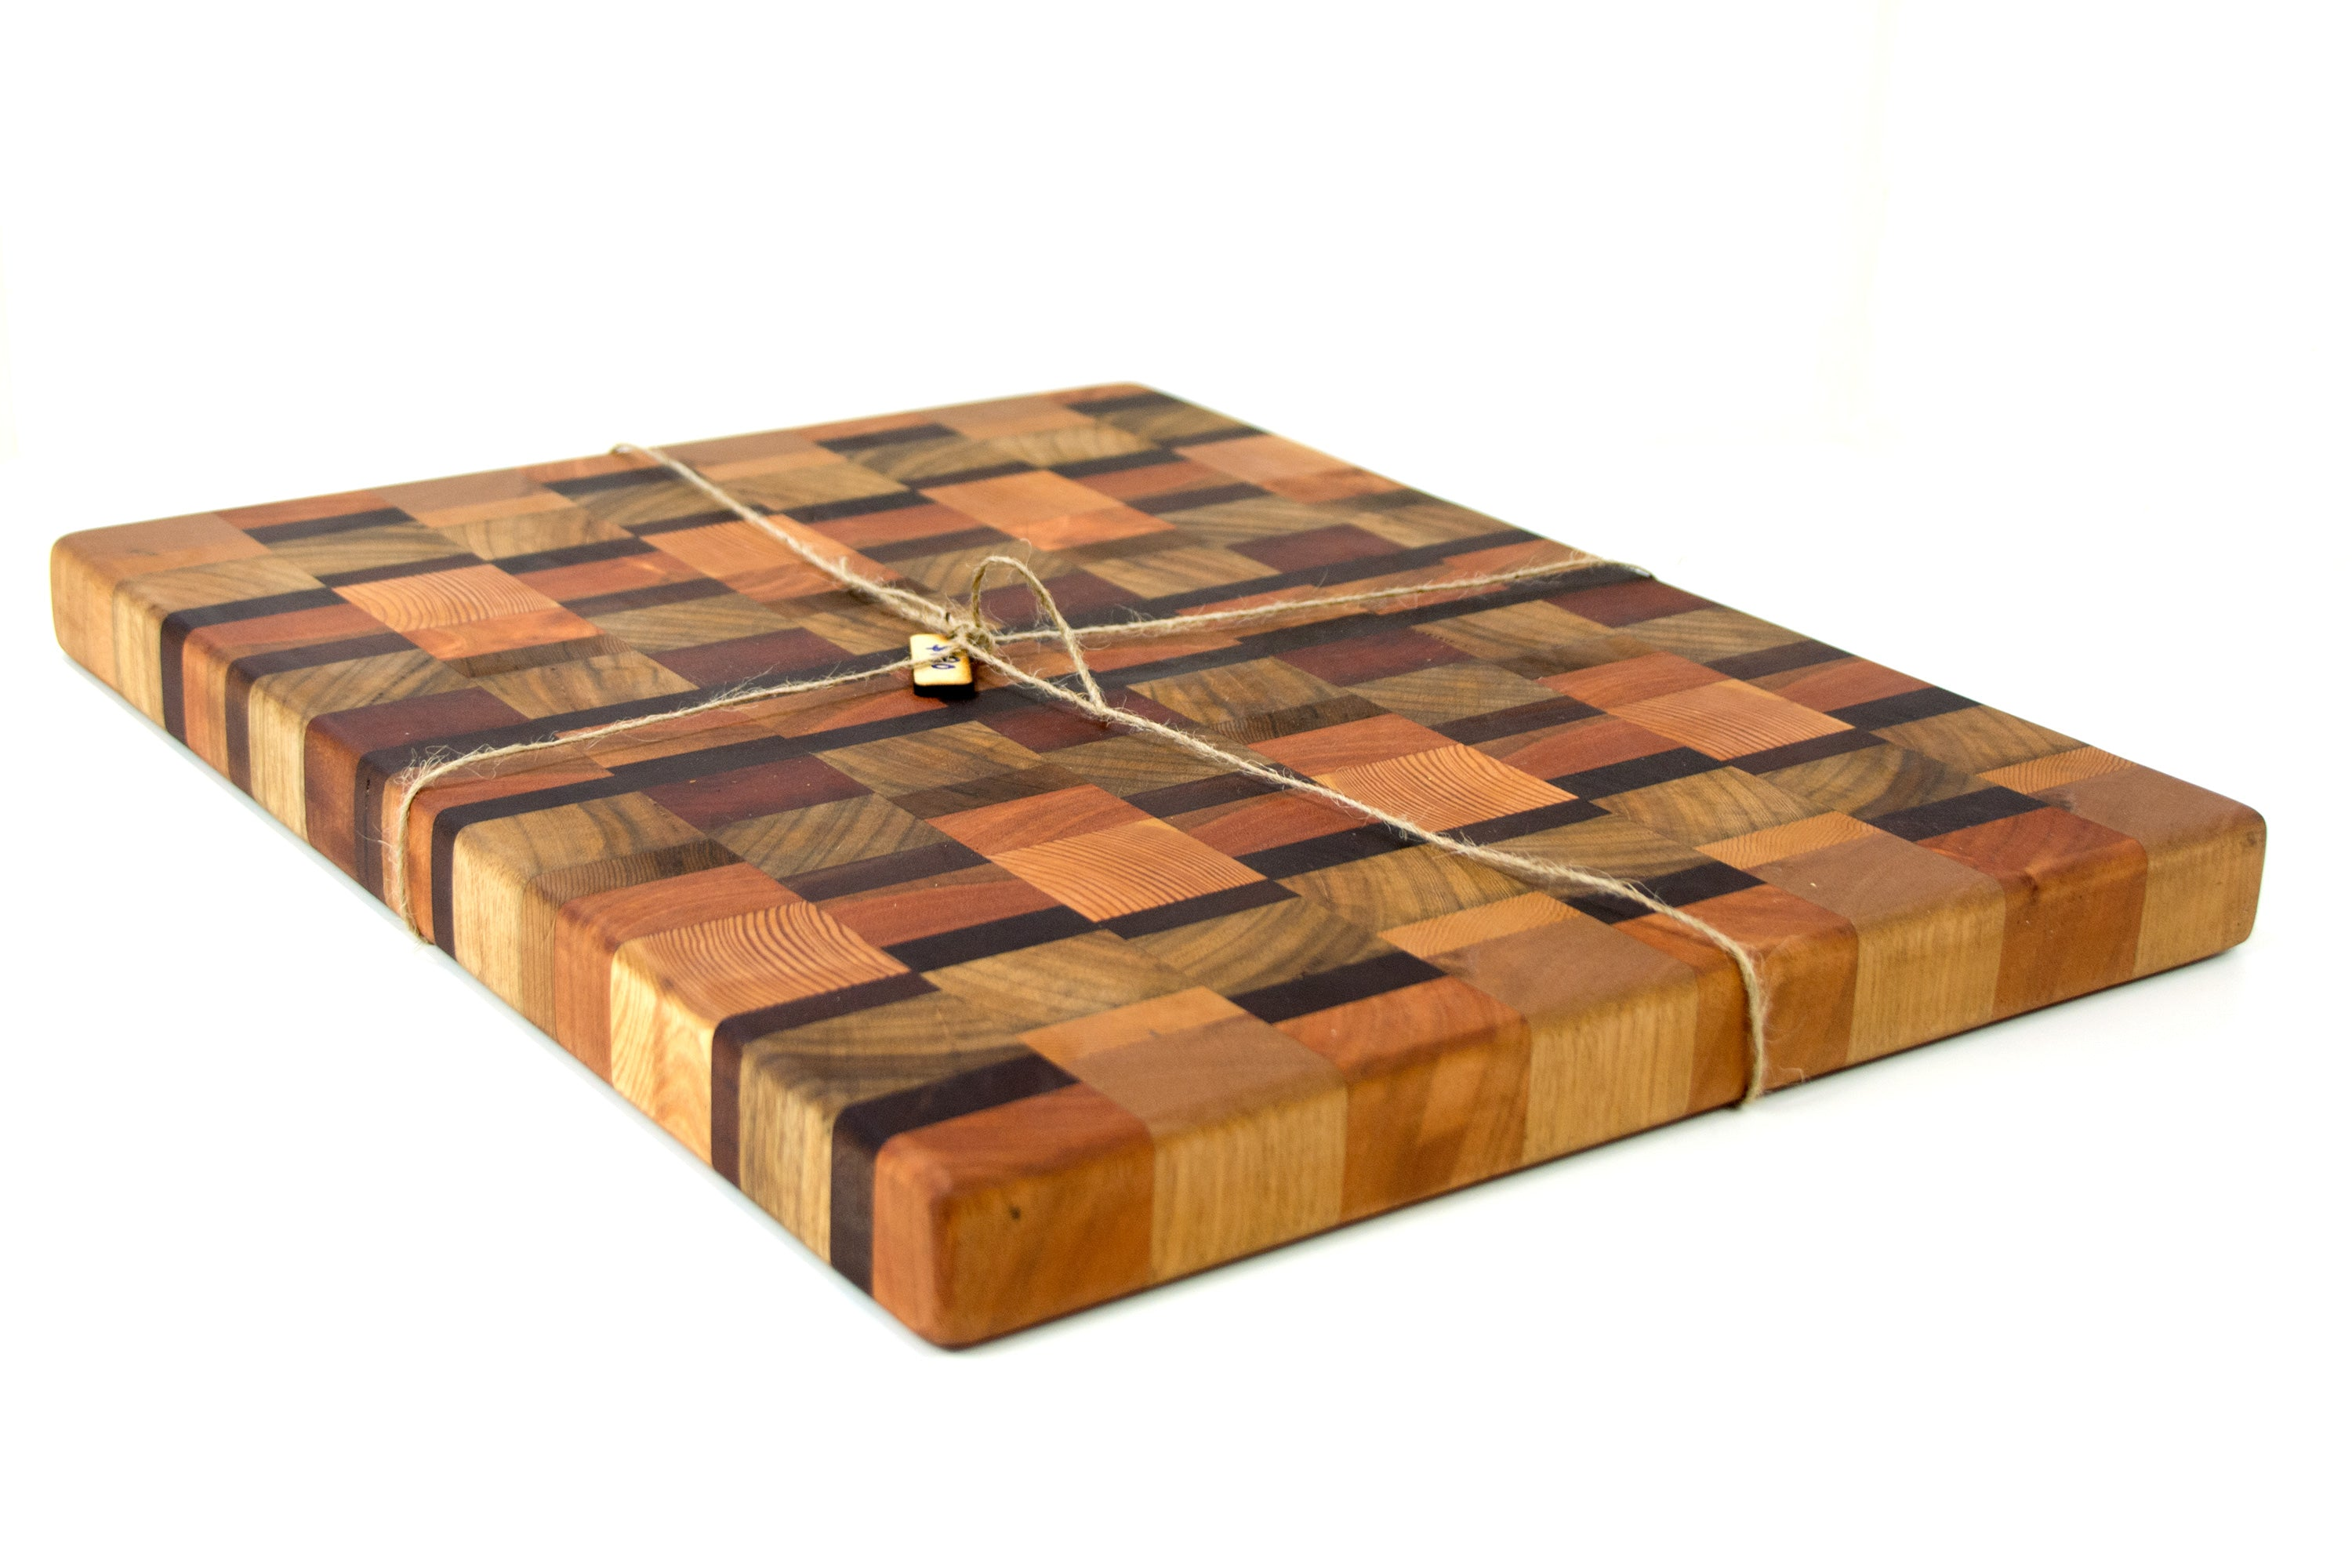 end grain cutting board - Periodic Furniture studio